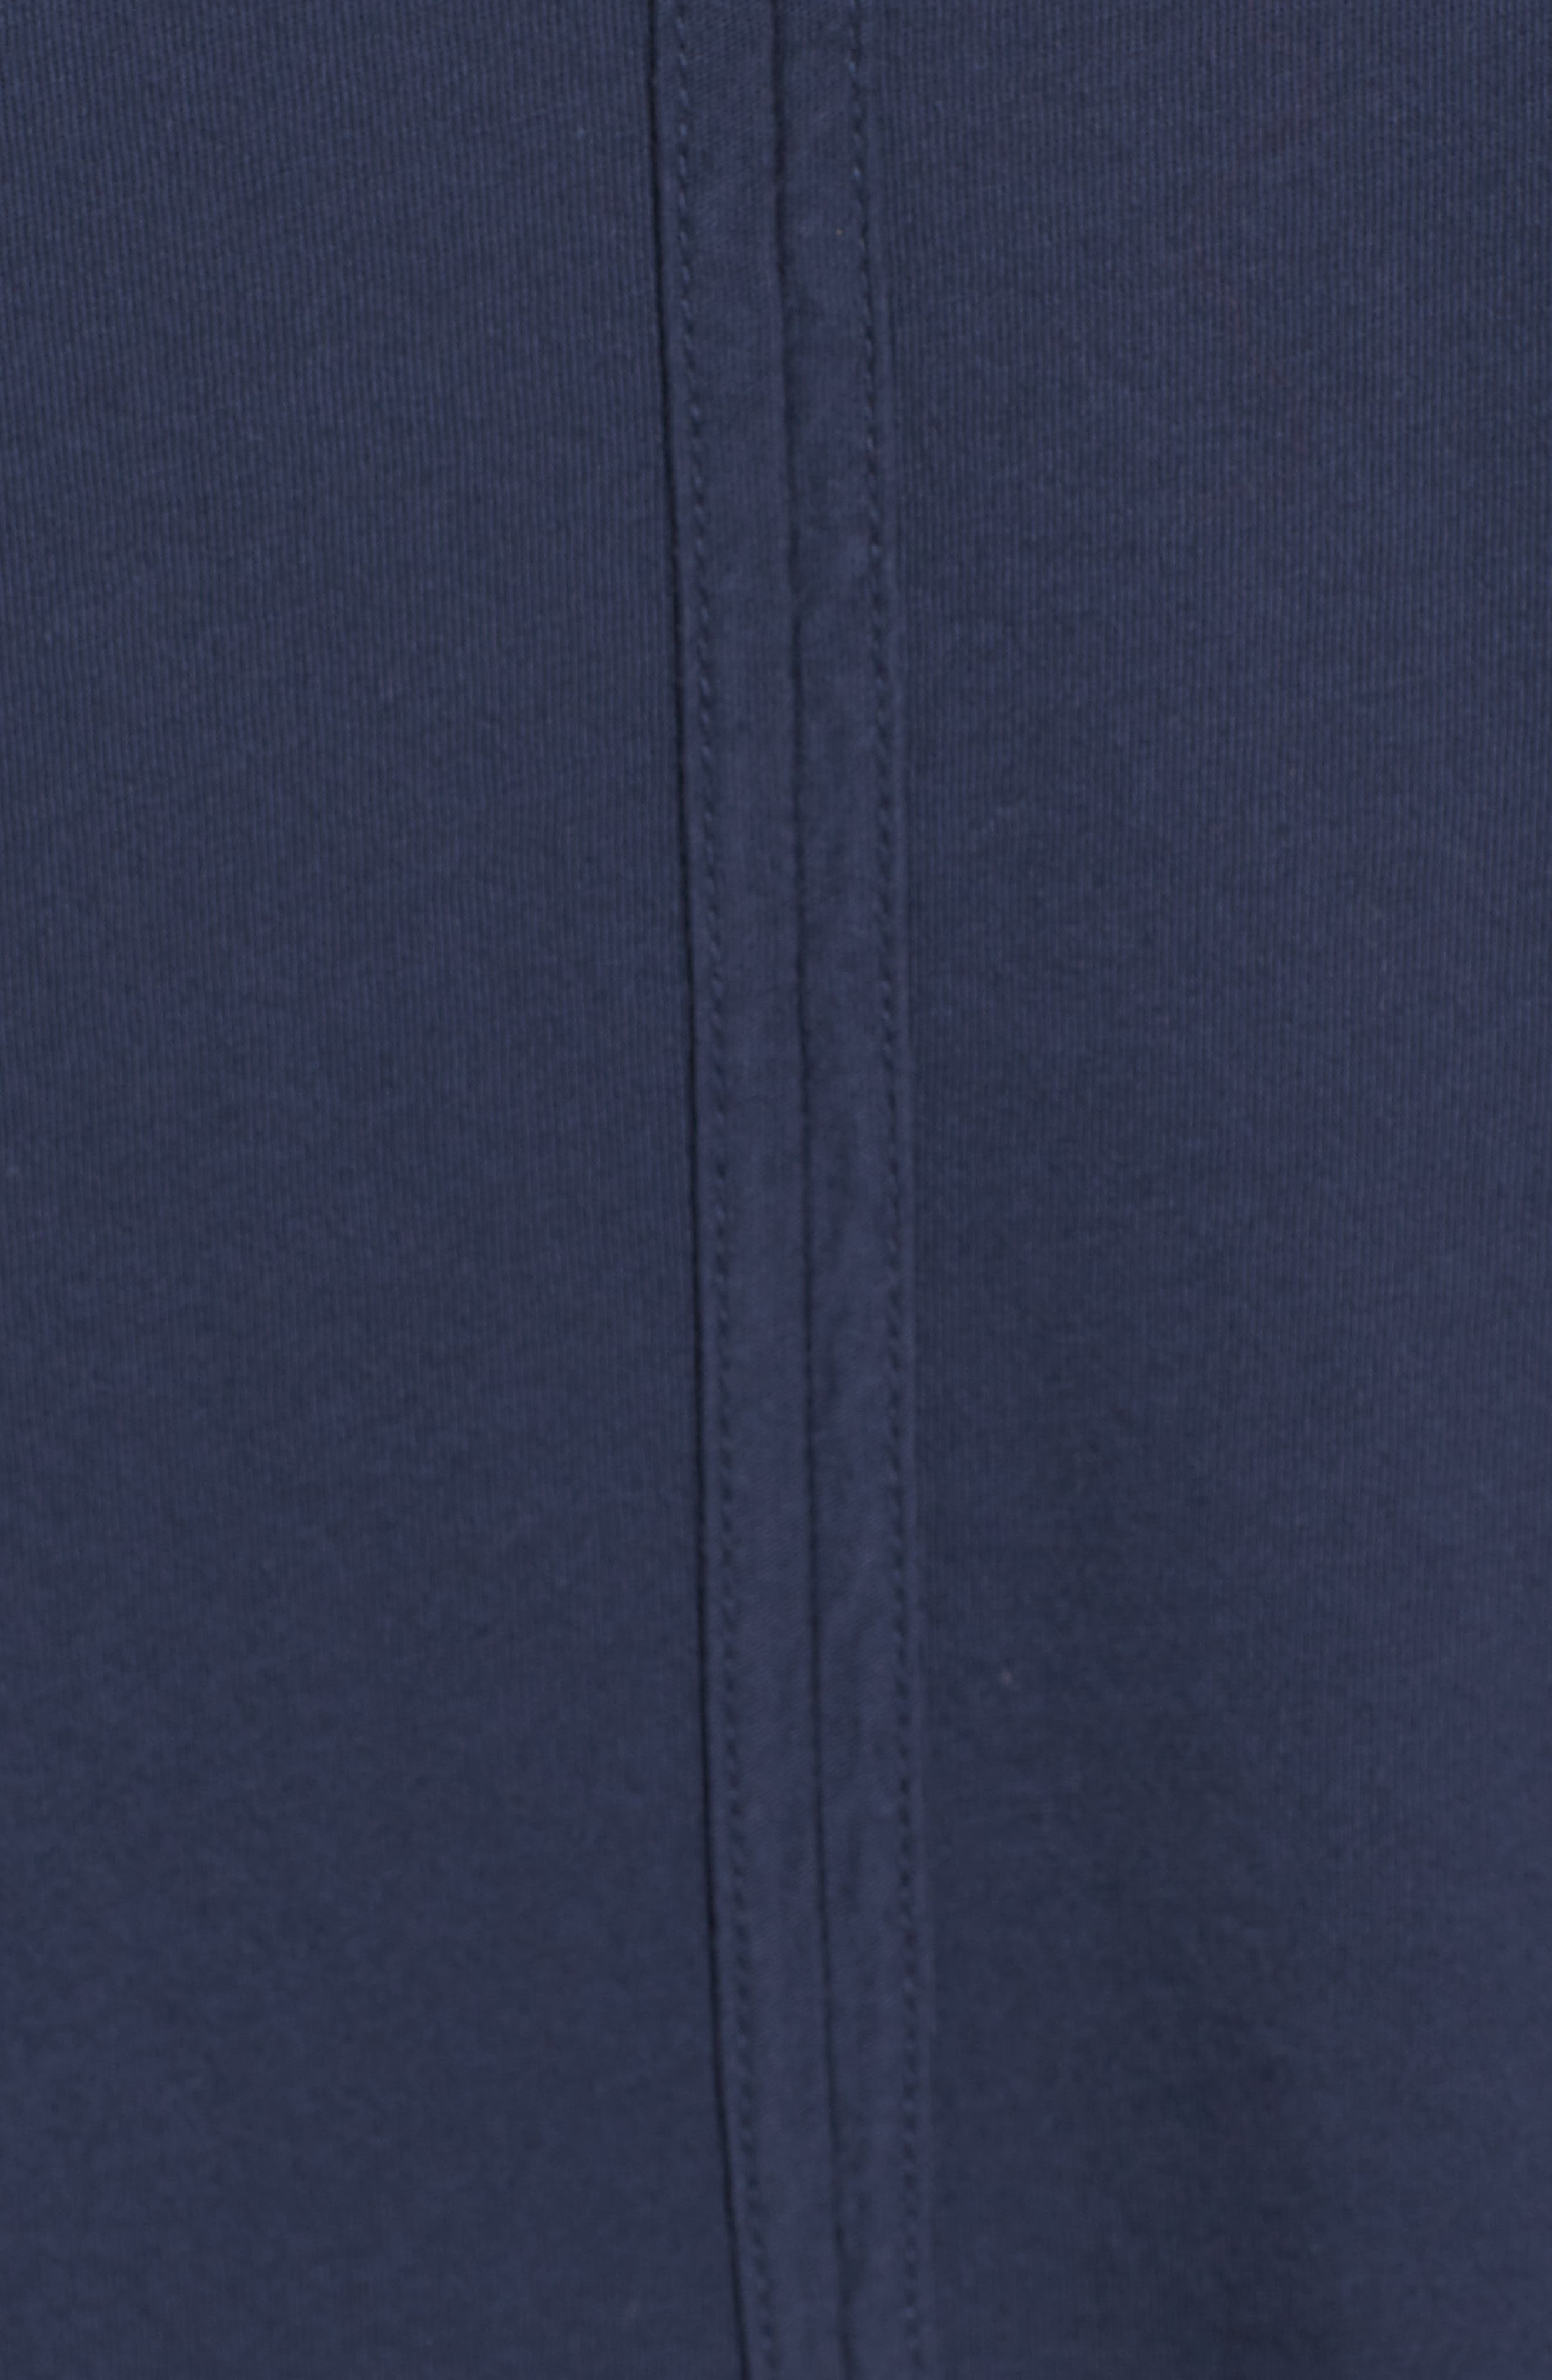 Emerson Pocket Tee,                             Alternate thumbnail 5, color,                             Vintage Navy